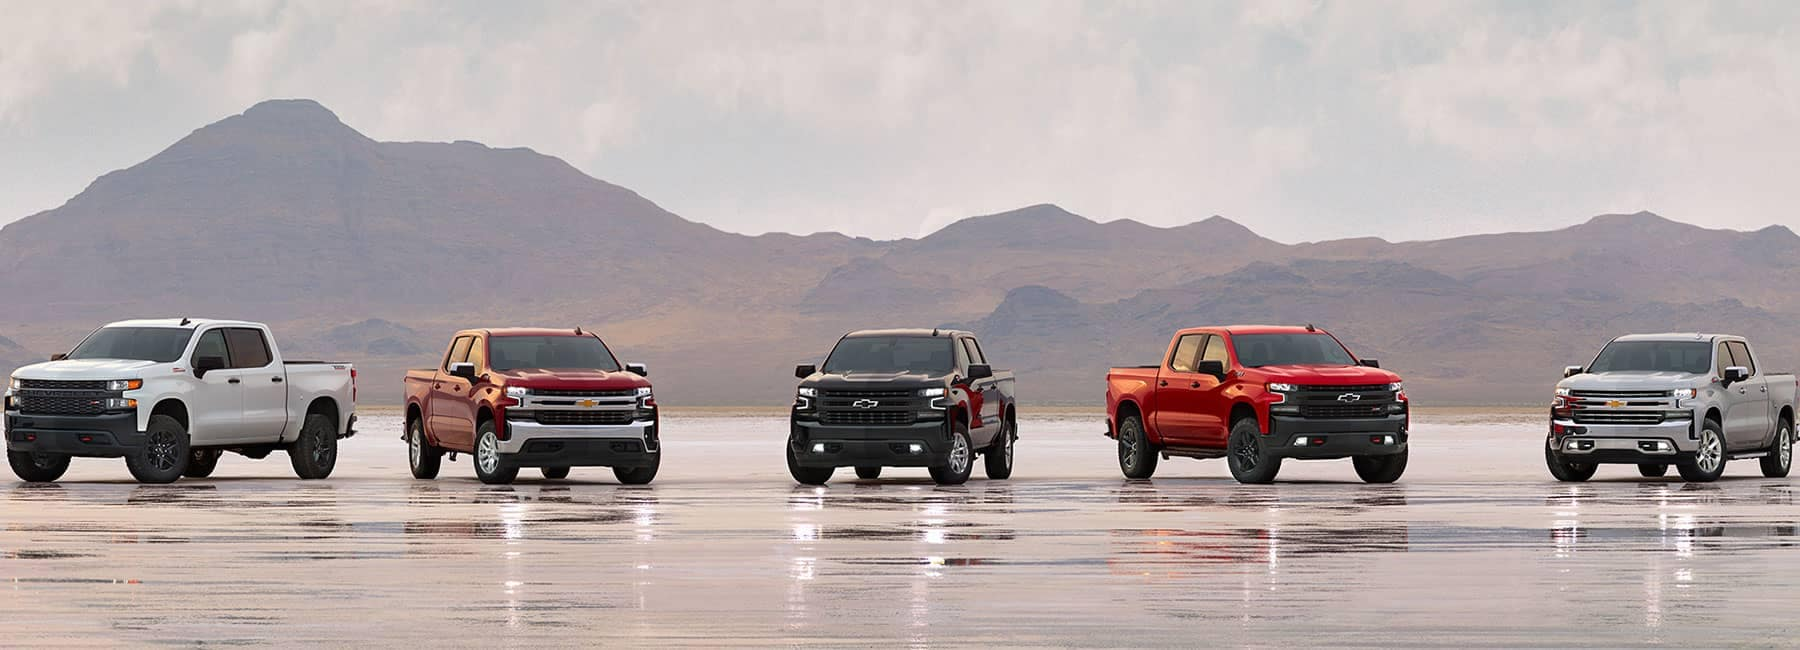 2019-Chevrolet vehicles on the beach